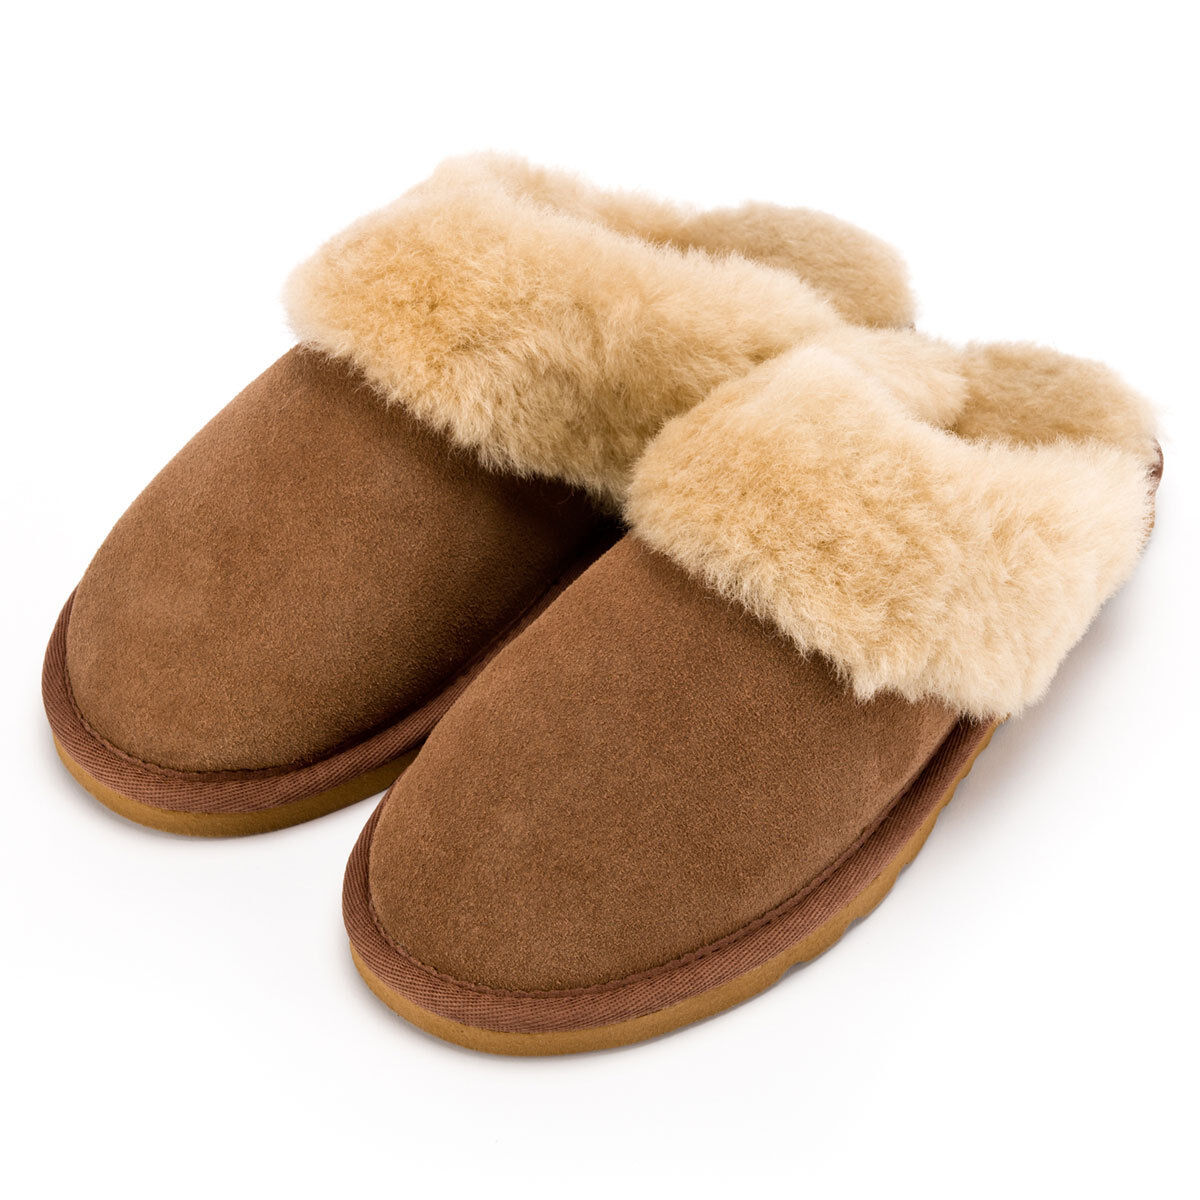 LADIES SHEEPSKIN SLIPPERS MULES 100% GENUINE SHEEPSKIN CHESTNUT